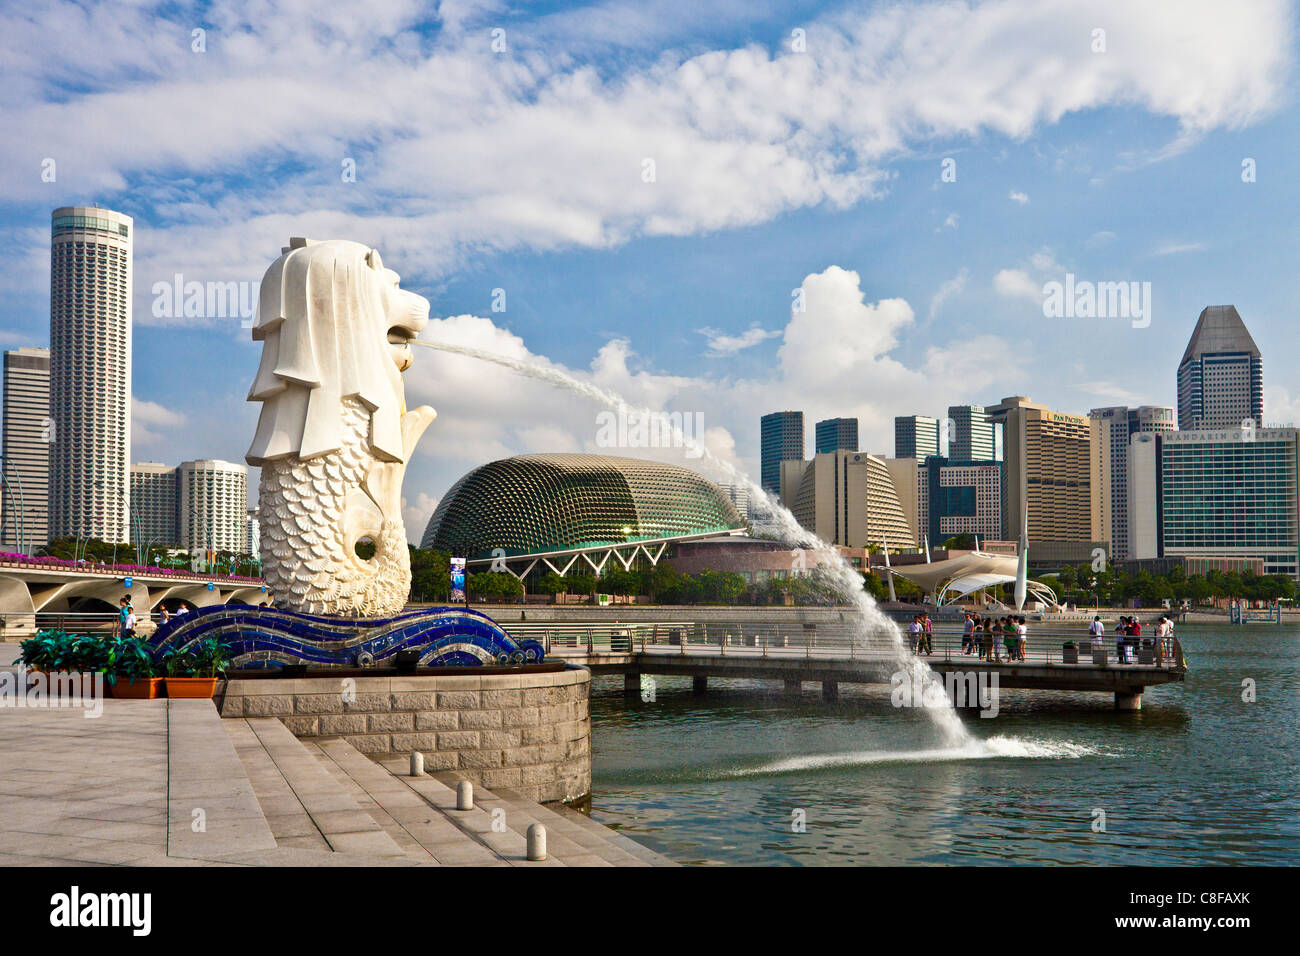 Singapore, Asia, Merlion, landmark, lion, mermaid, sculpture, water vomit, spit, bank promenade, Skyline, town, - Stock Image